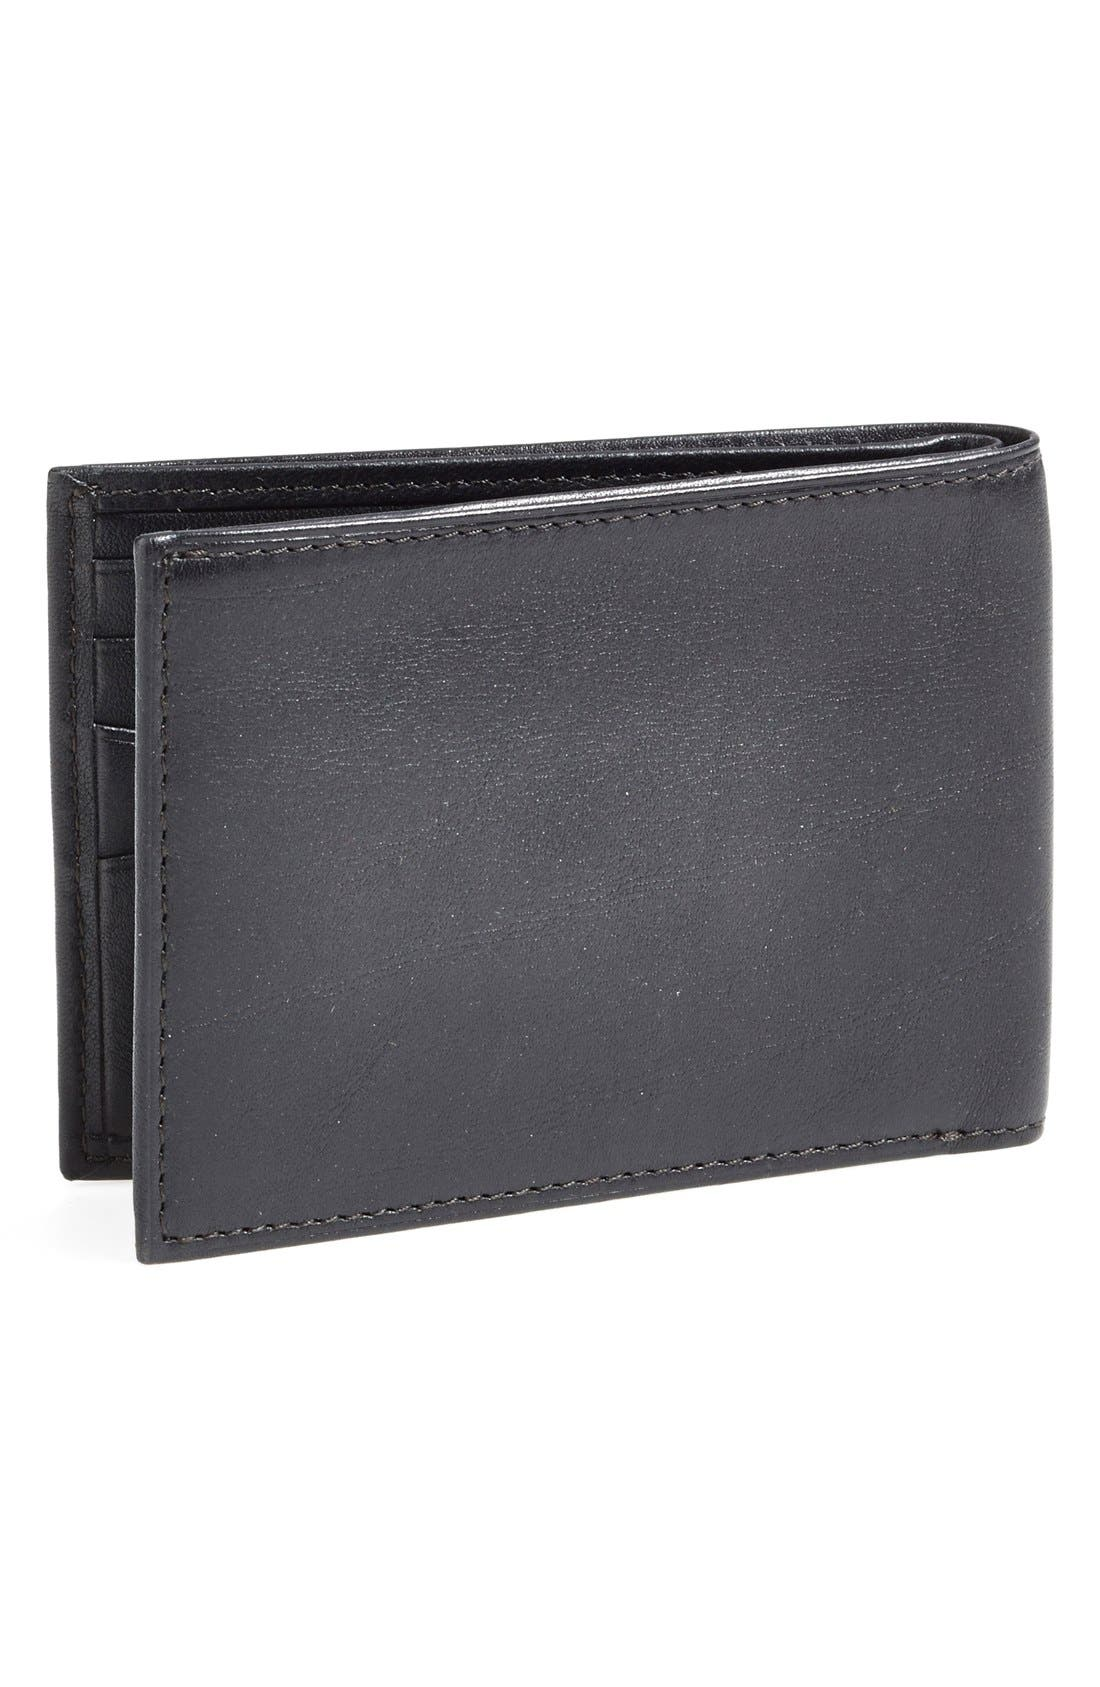 Small Bifold Wallet,                             Alternate thumbnail 4, color,                             001